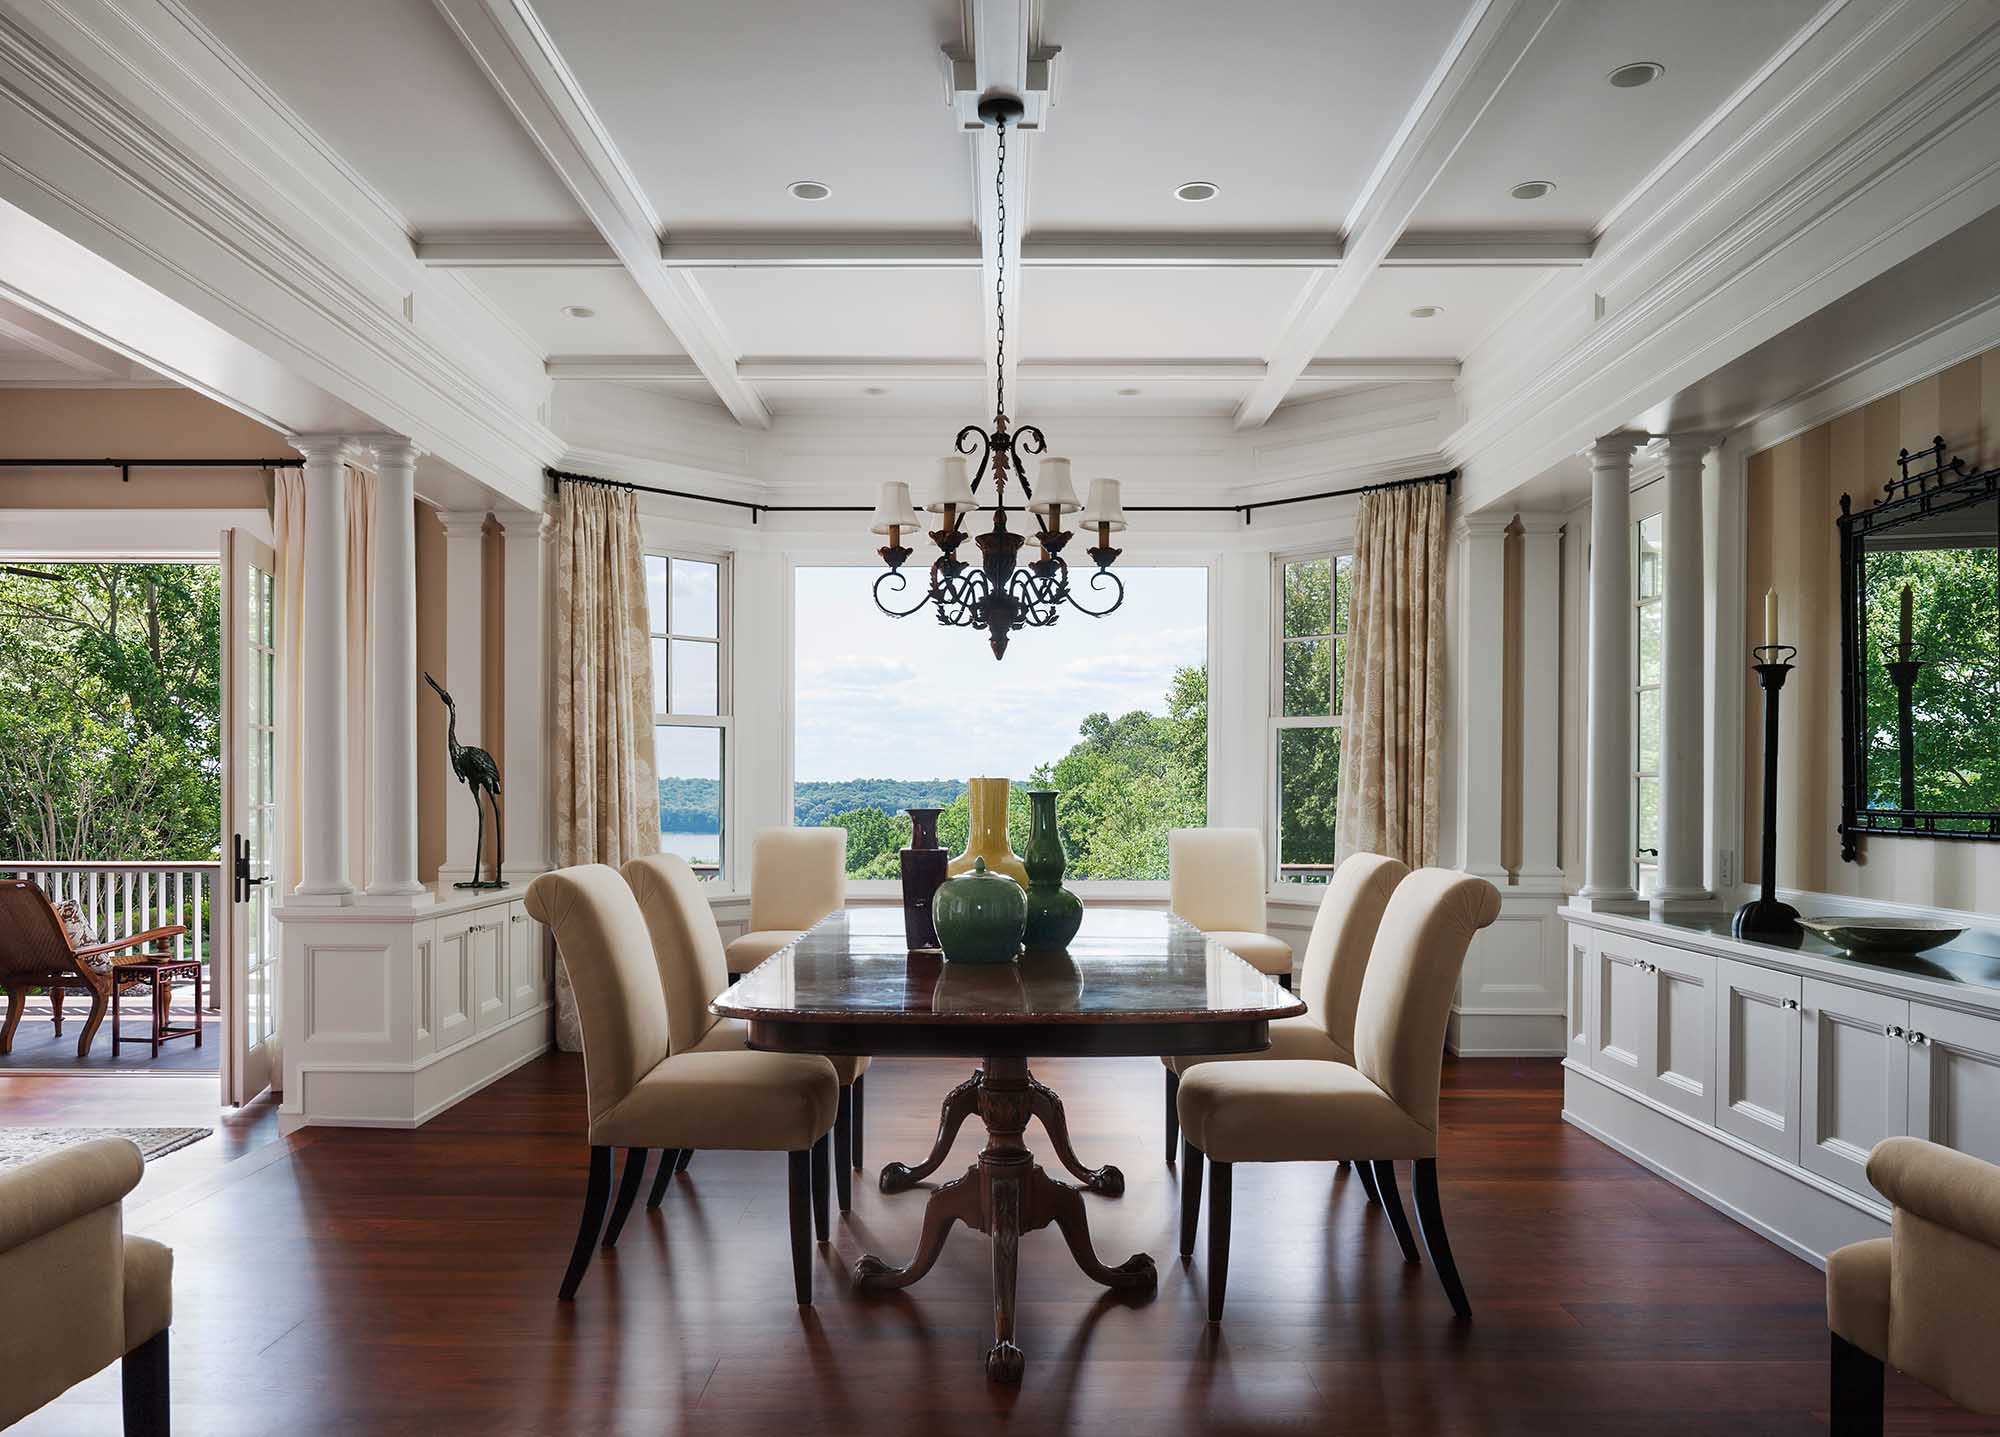 Queen Anne Revival, Cold Spring Harbor, long island, dining room, doric columns, coffer ceiling, wainscott, water view, long island sound, bay window, balcony